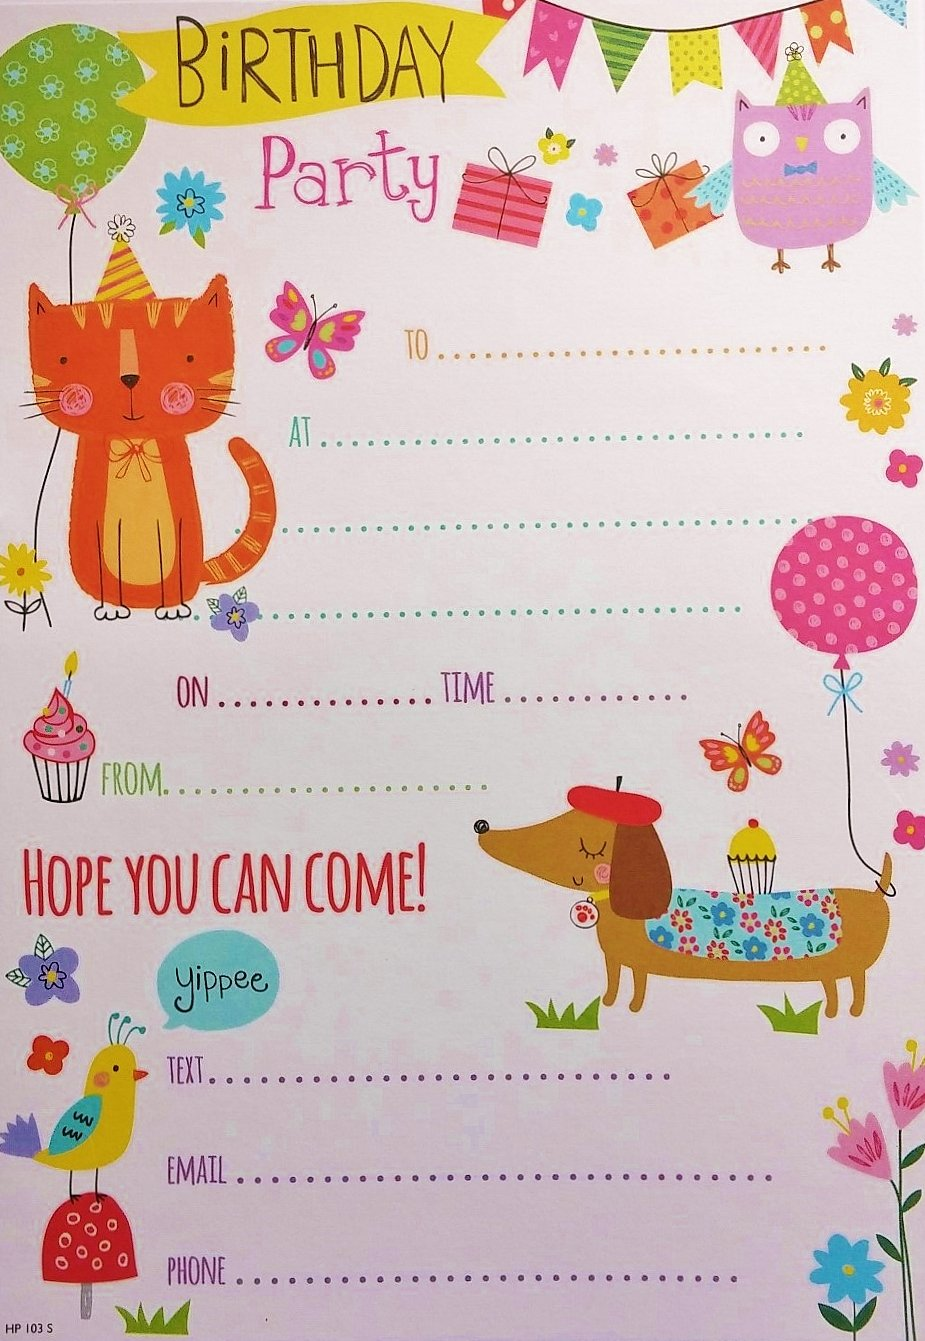 Party Invitations with Envelopes (Pack of 20)P: Amazon.co.uk: Toys ...